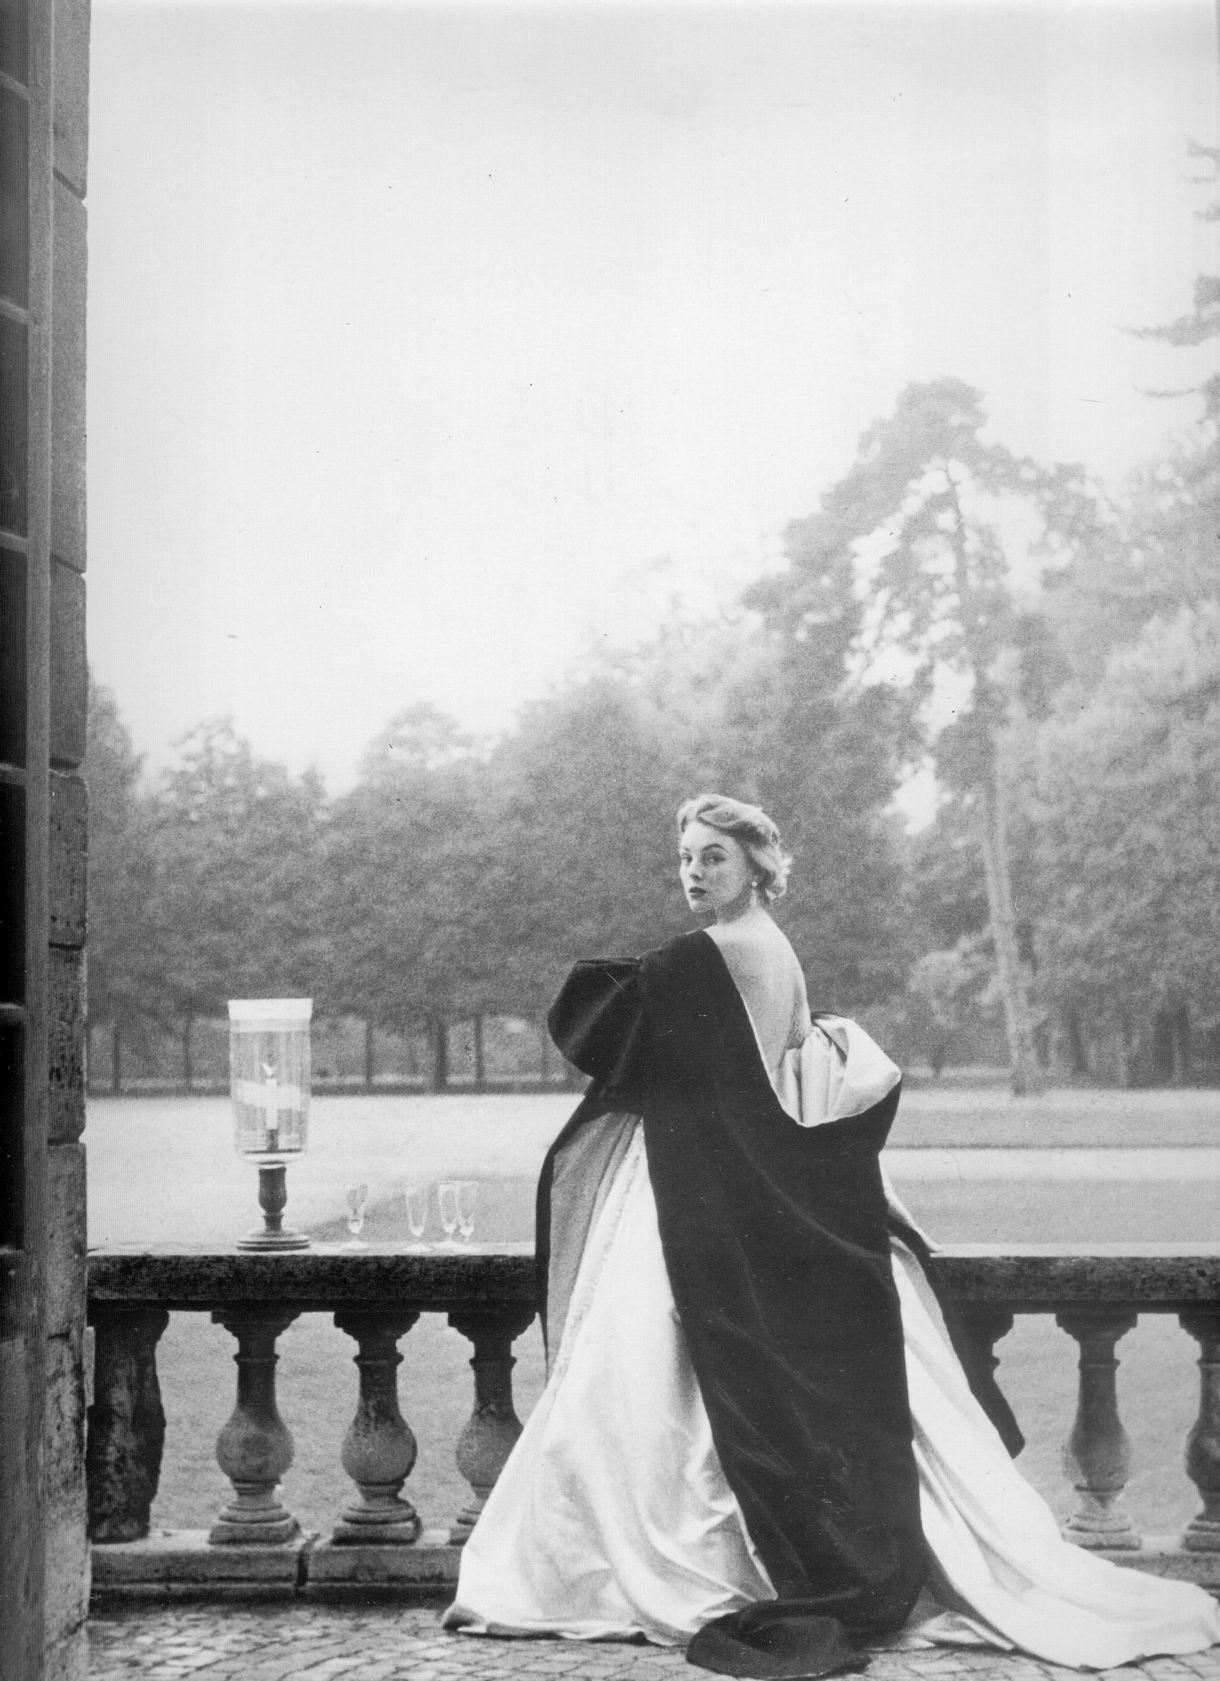 Margaret Philips pentru Givenchy, fotografiata de Henry Clarke in 1952